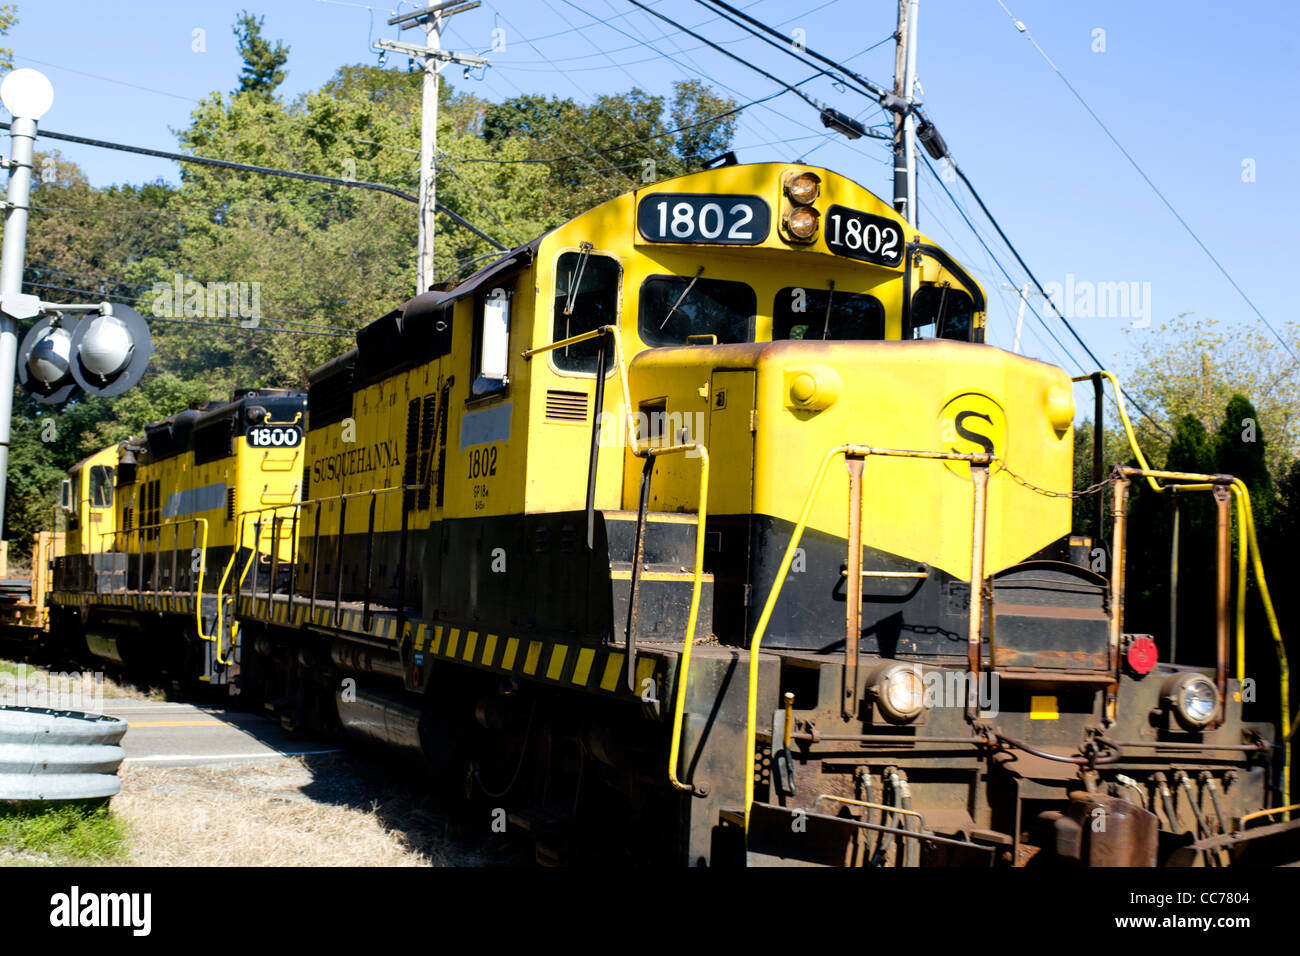 Train Locomotive Engine bright Yellow close up - Stock Image